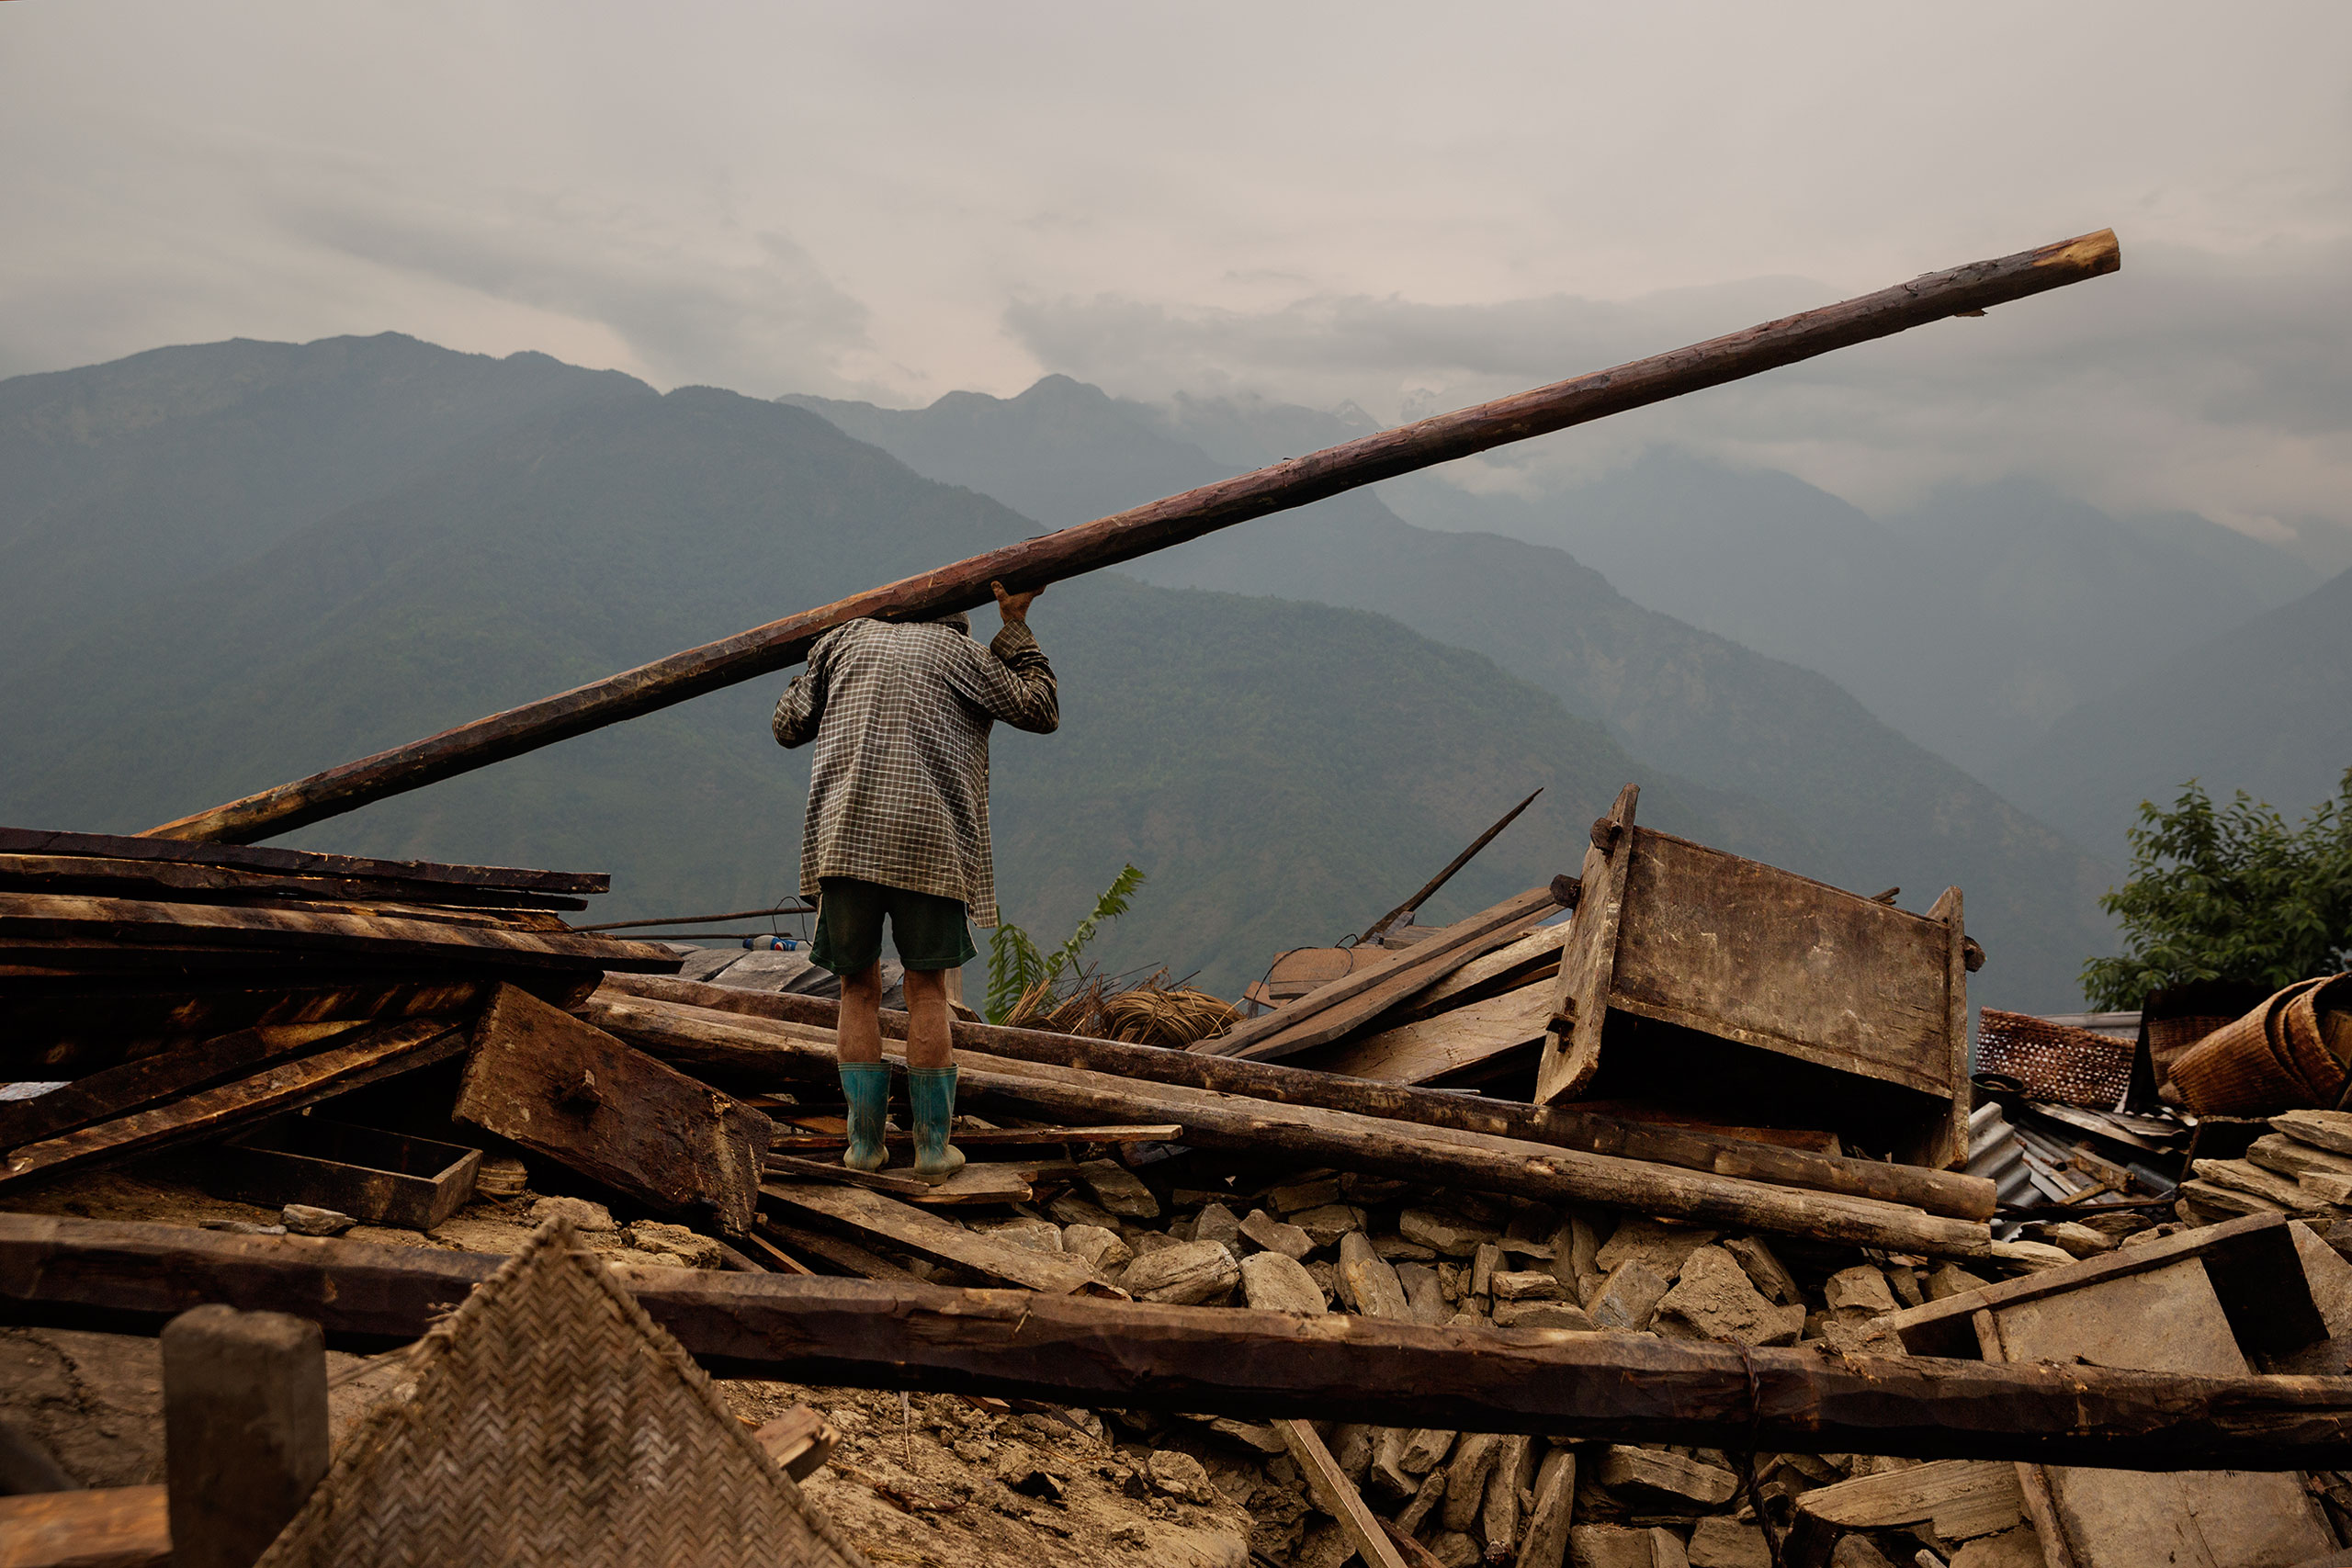 A man lifts debris from a flattened structure in Barpak, Nepal, May 6, 2015.